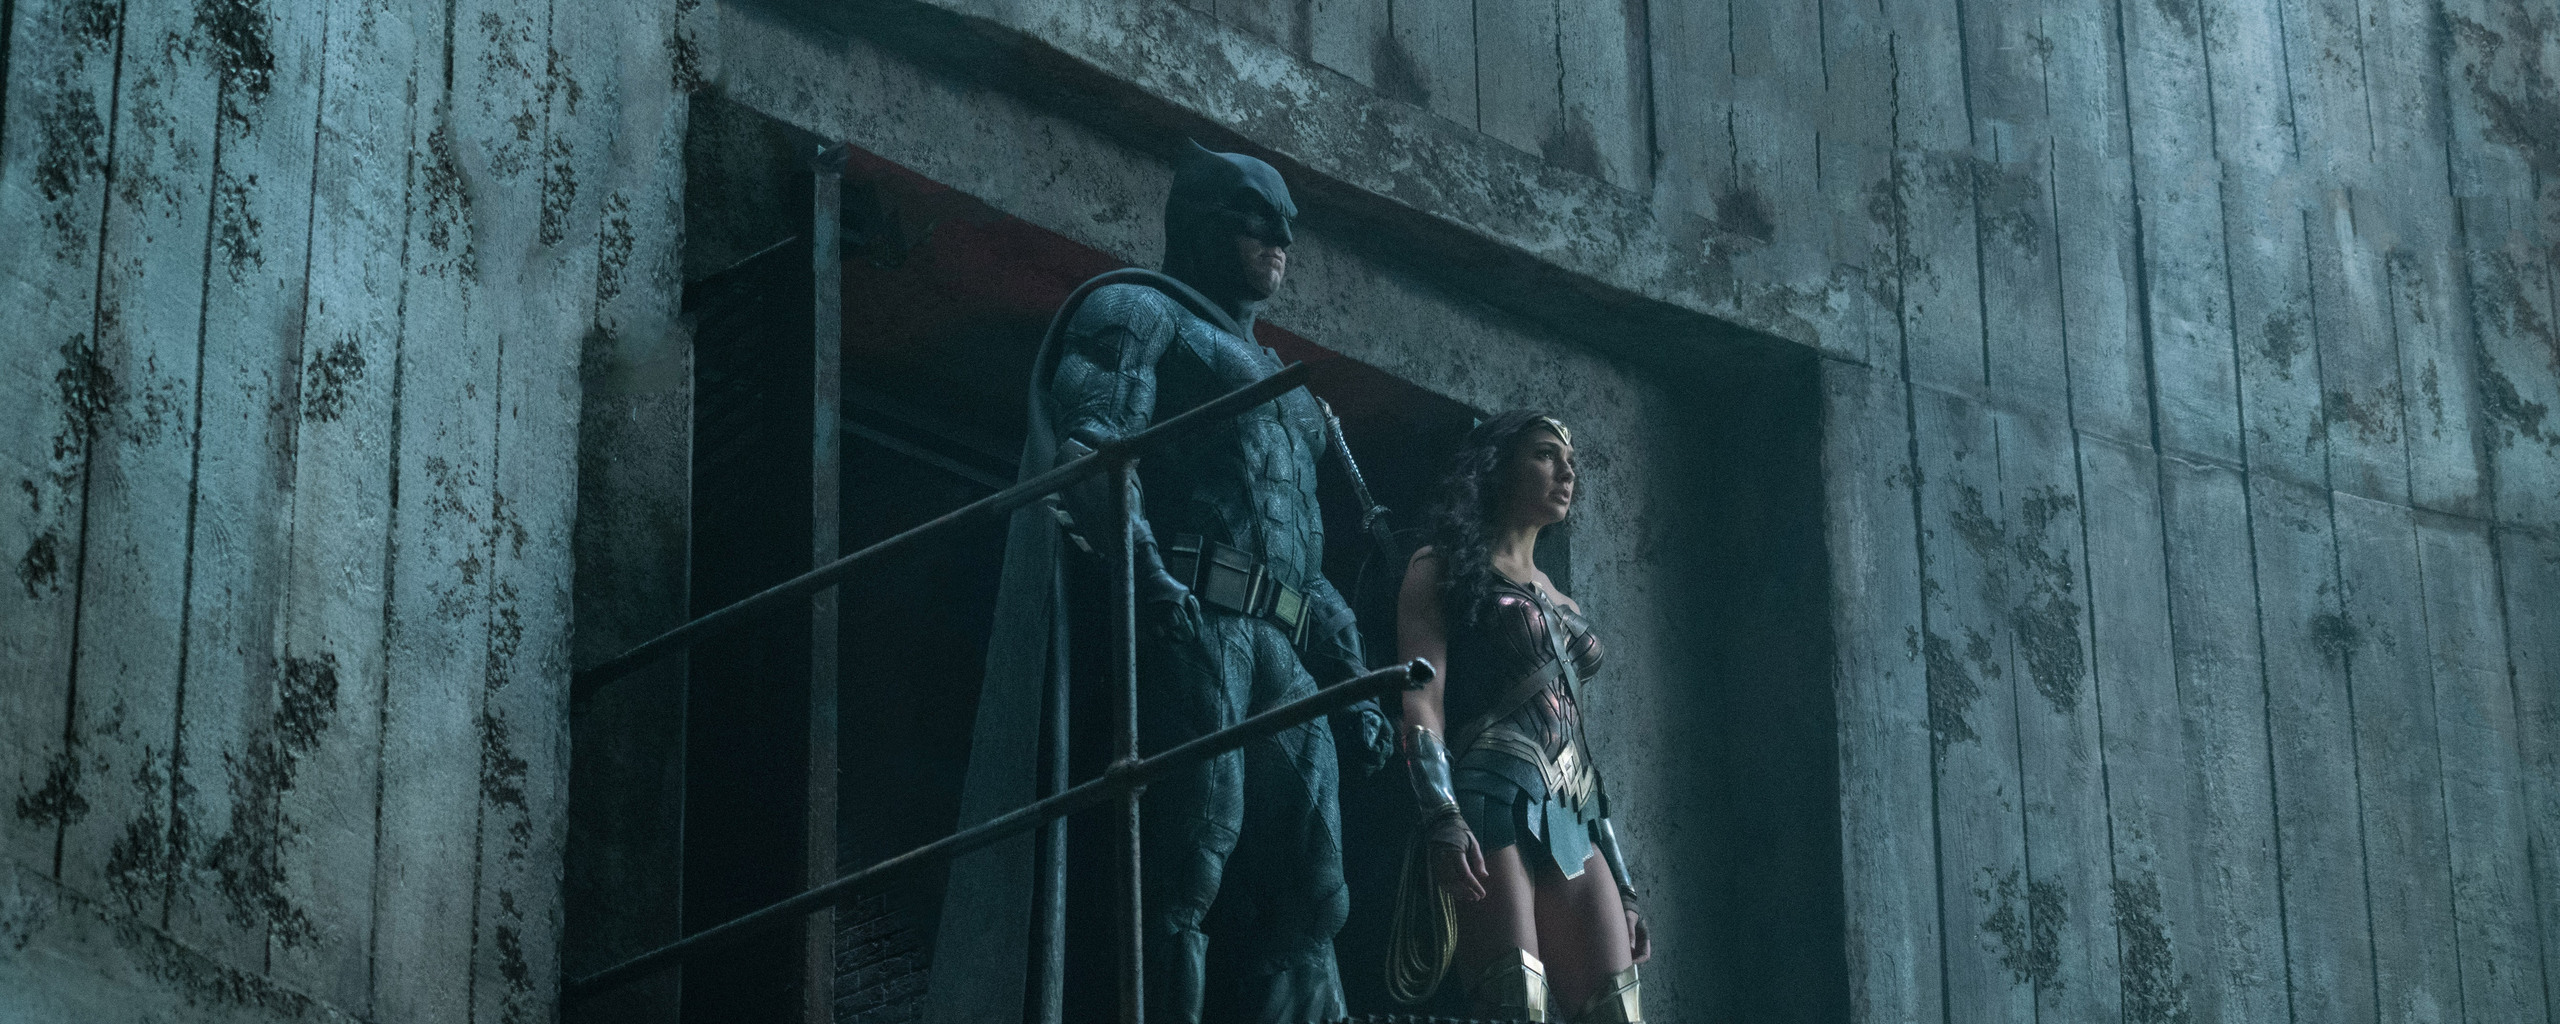 batman-wonder-woman-justice-league-2017-67.jpg